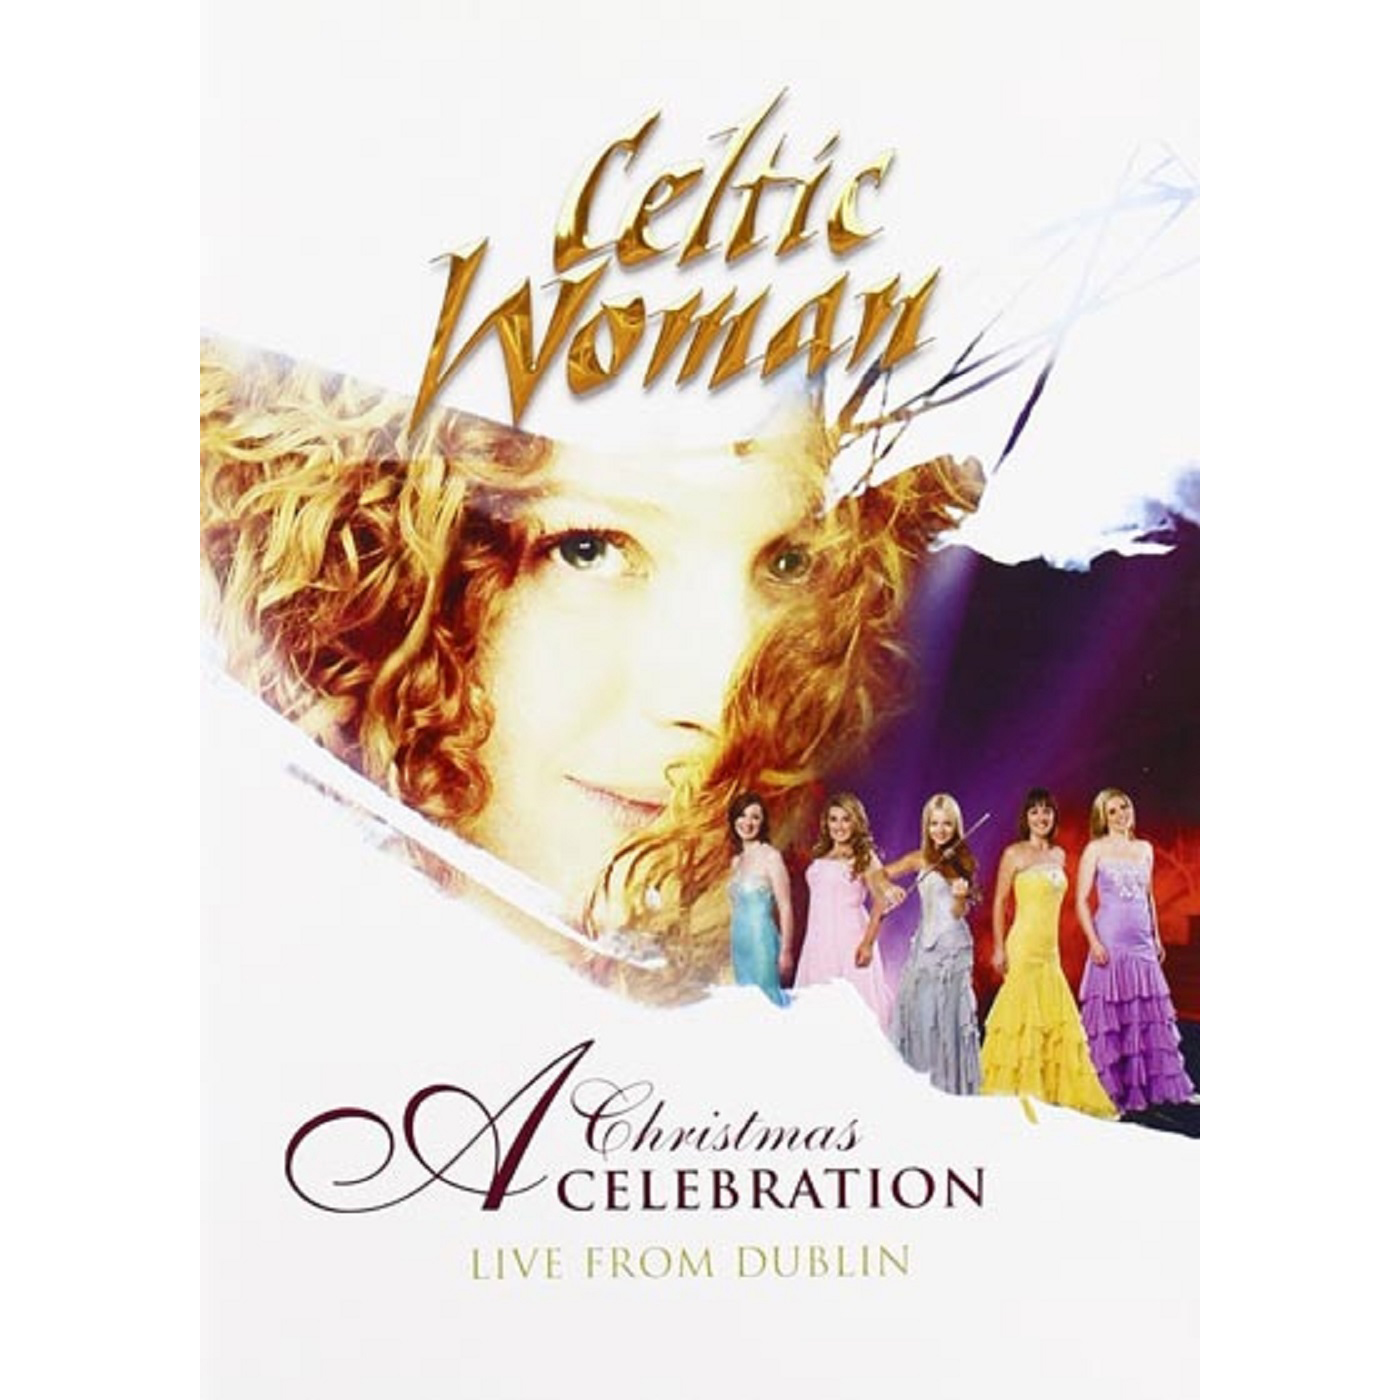 Woman - A Christmas Celebration DVD